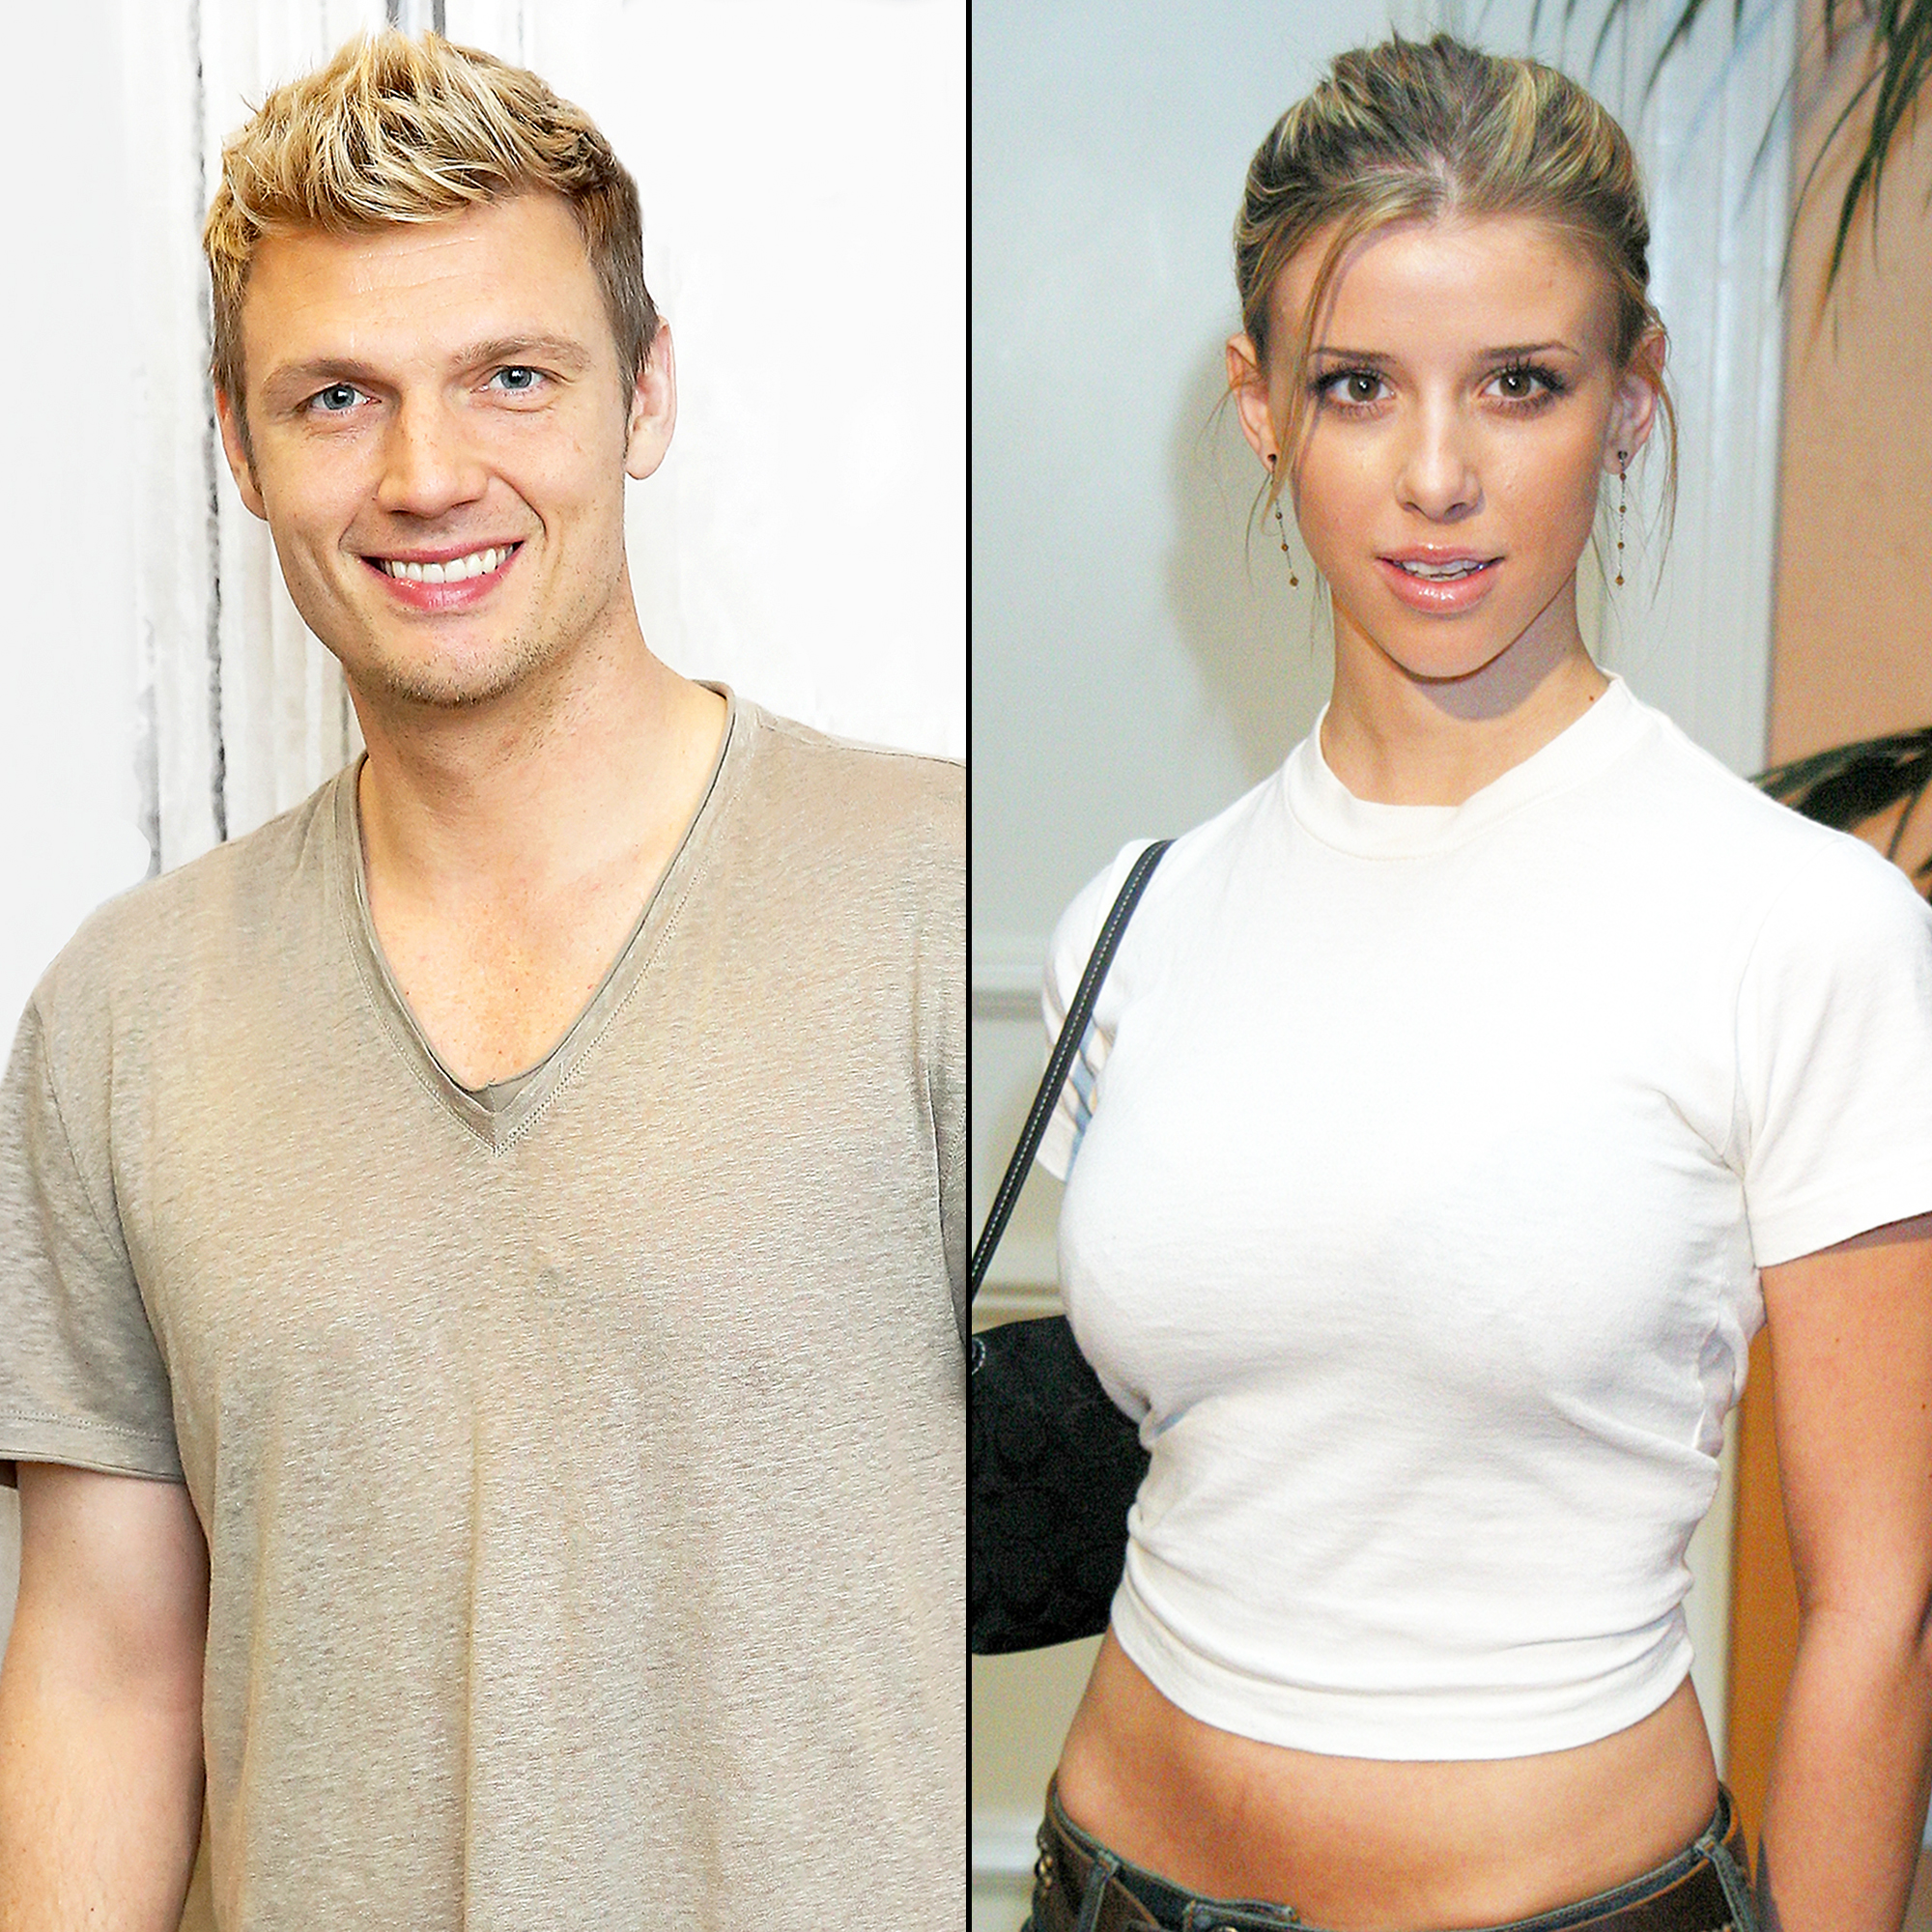 Former Backstreet Boy, Nick Carter accused of rape